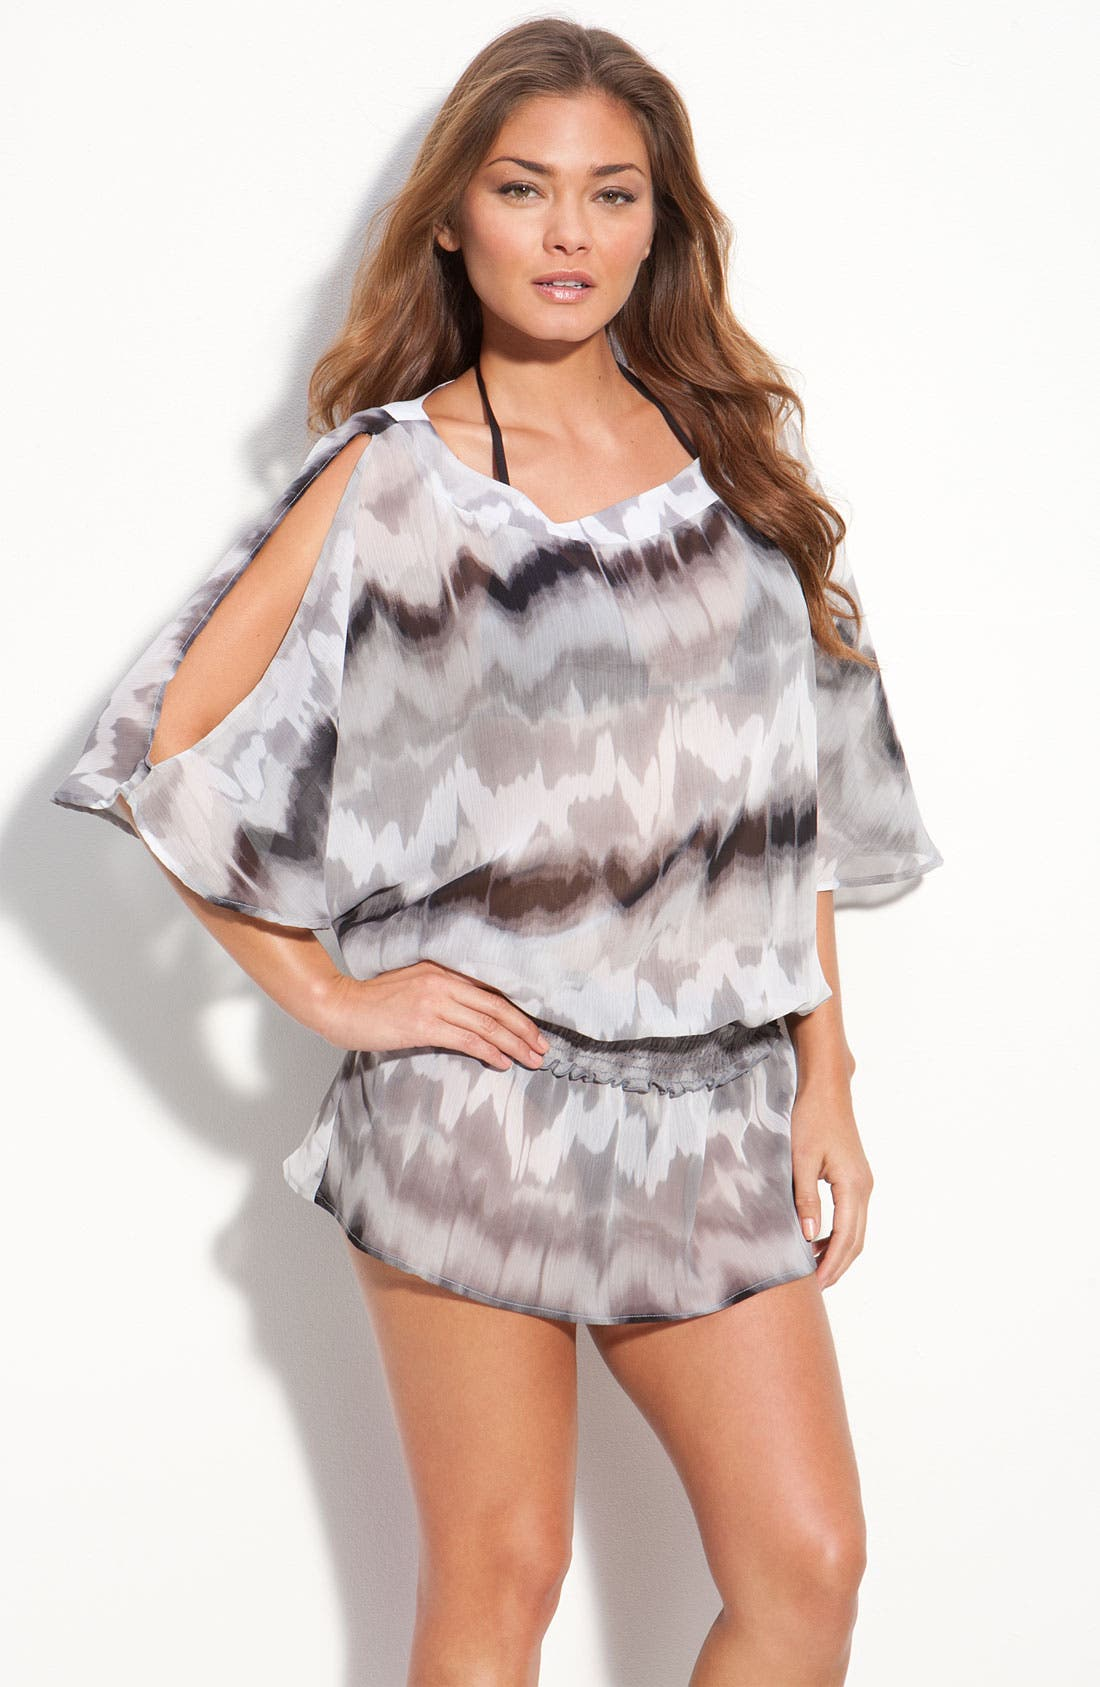 Alternate Image 1 Selected - W Swimwear Tie Dye Tunic Cover-Up